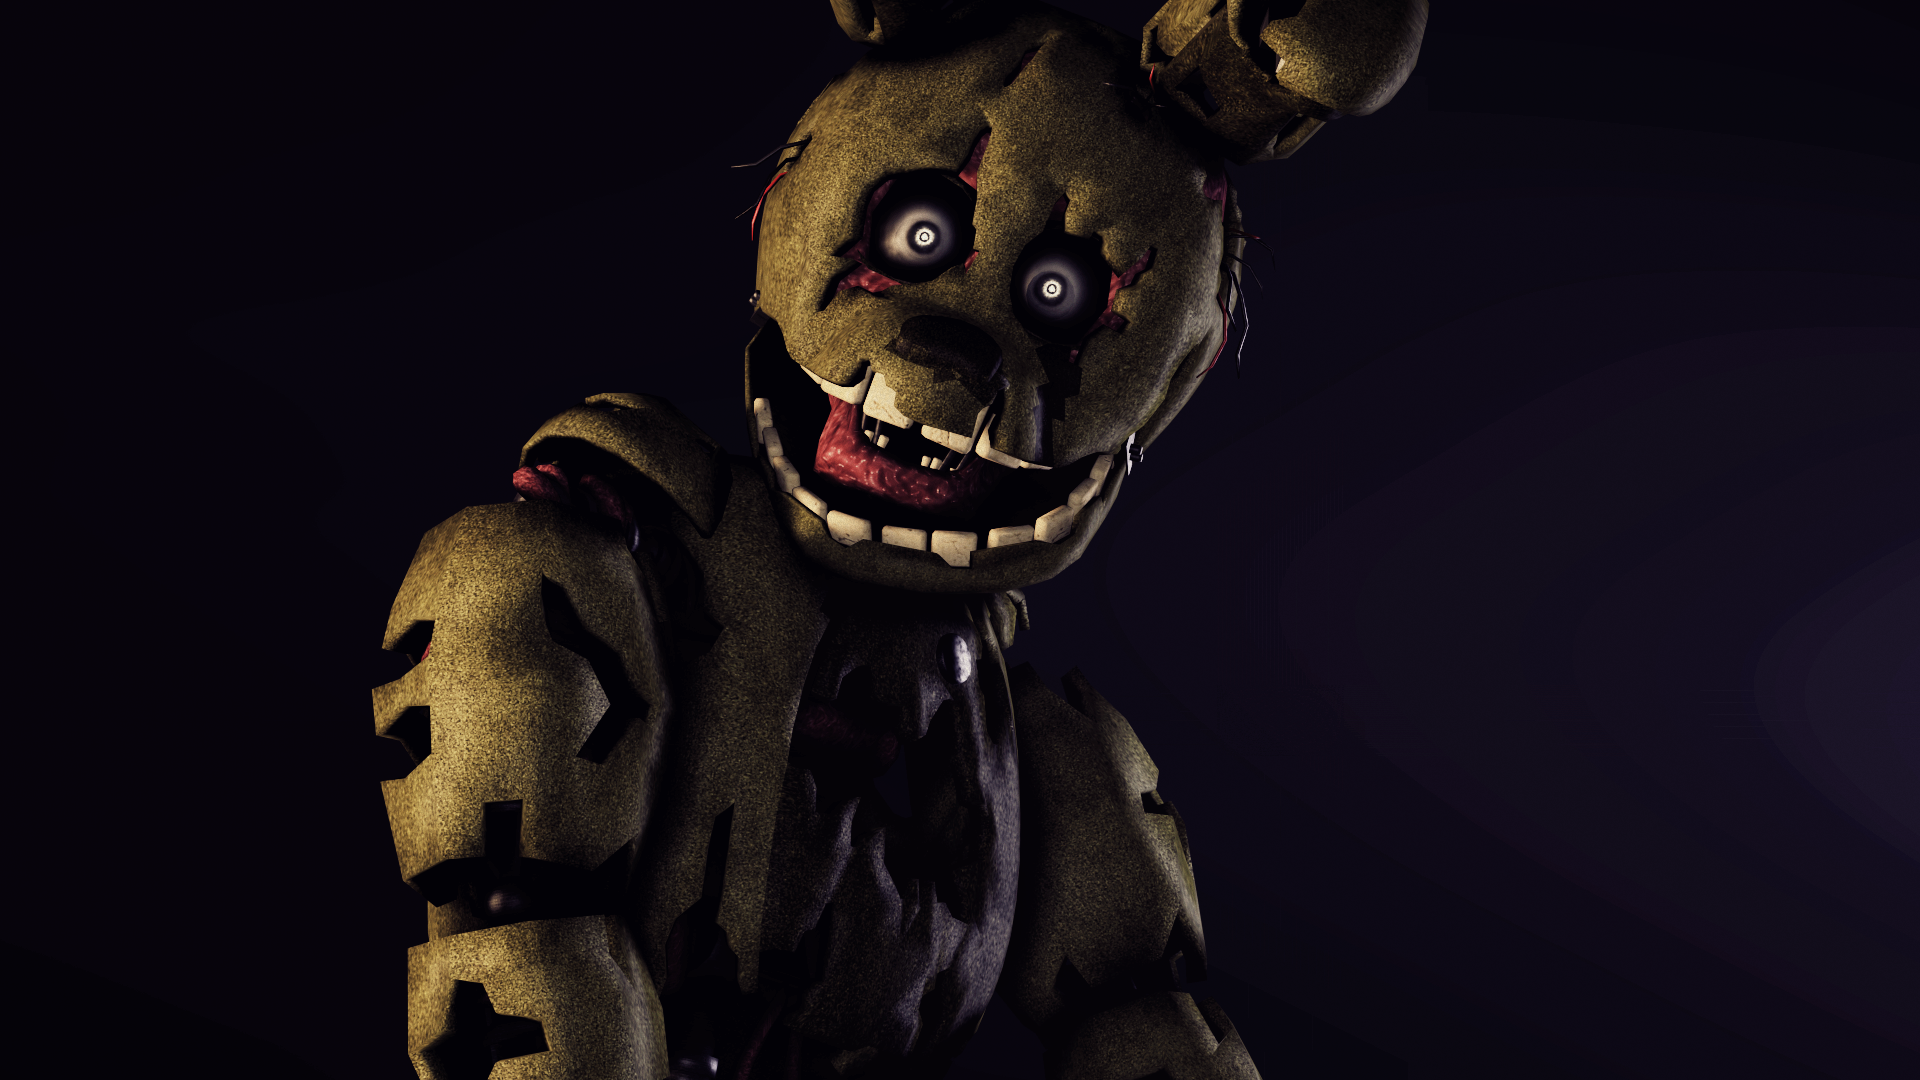 Found you springtrap poster by scruffygamer on deviantart - Fotos trap ...